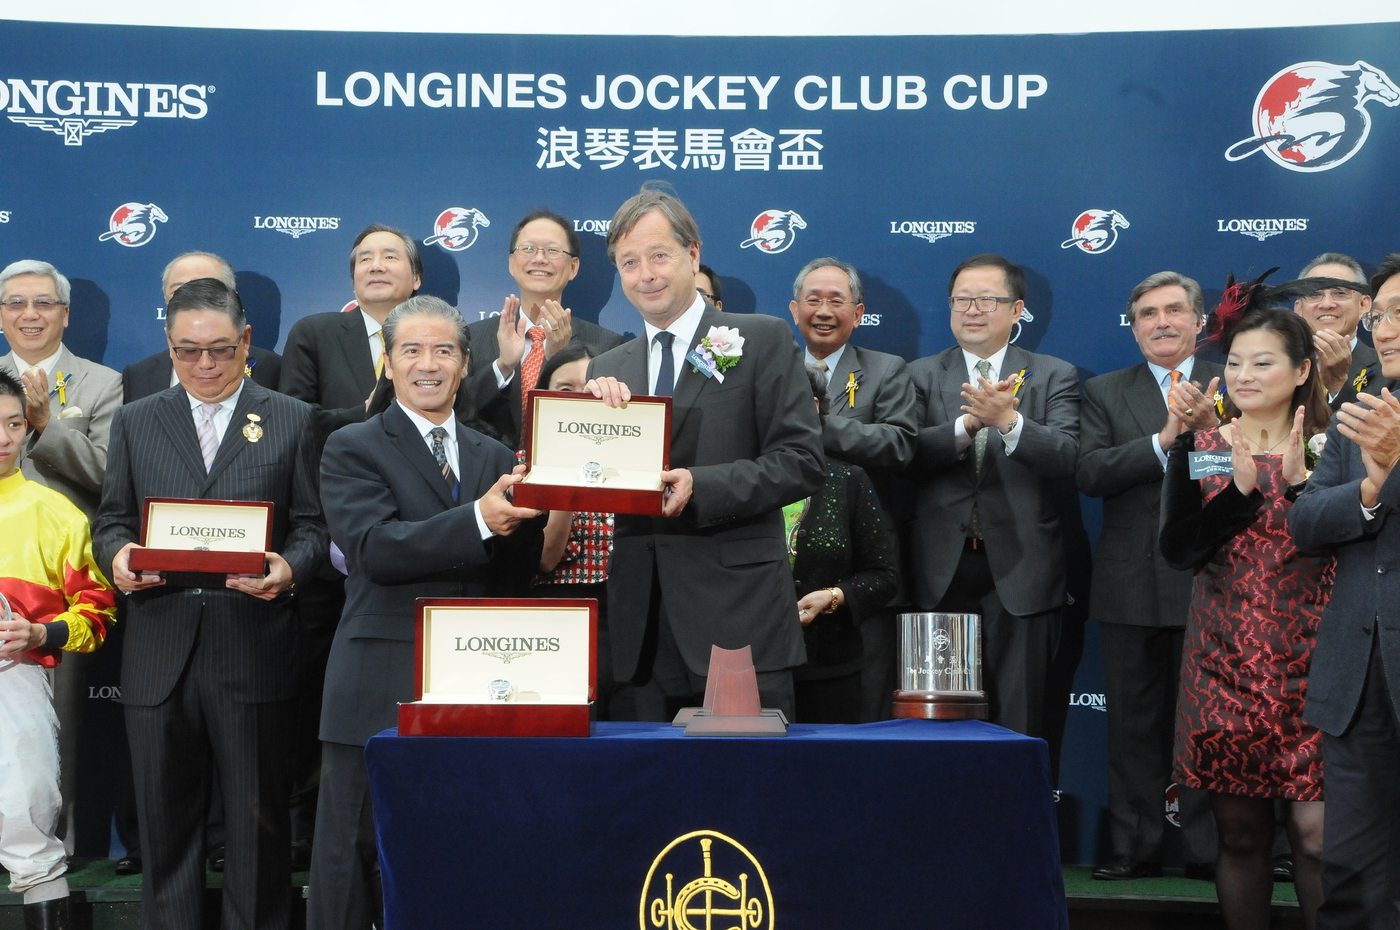 Longines Flat Racing Event: The first ever Longines Jockey Club Cup showcased Longines' passion for equestrian sports 2